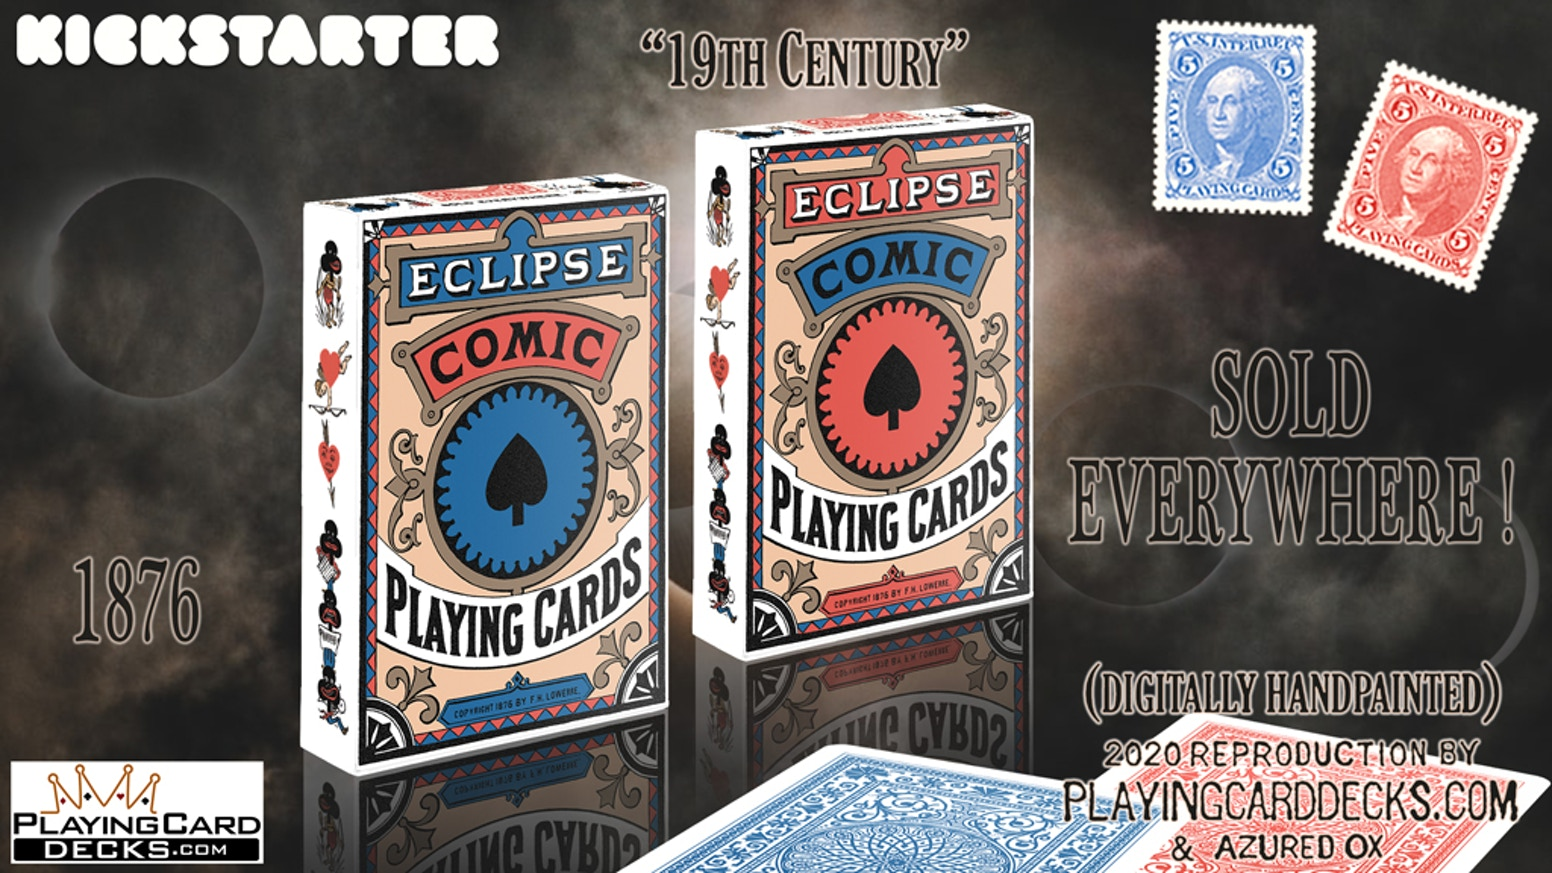 Playing cards originally printed in 1876, now digitally recreated from scratch. Help us bring back a part of playing card history.